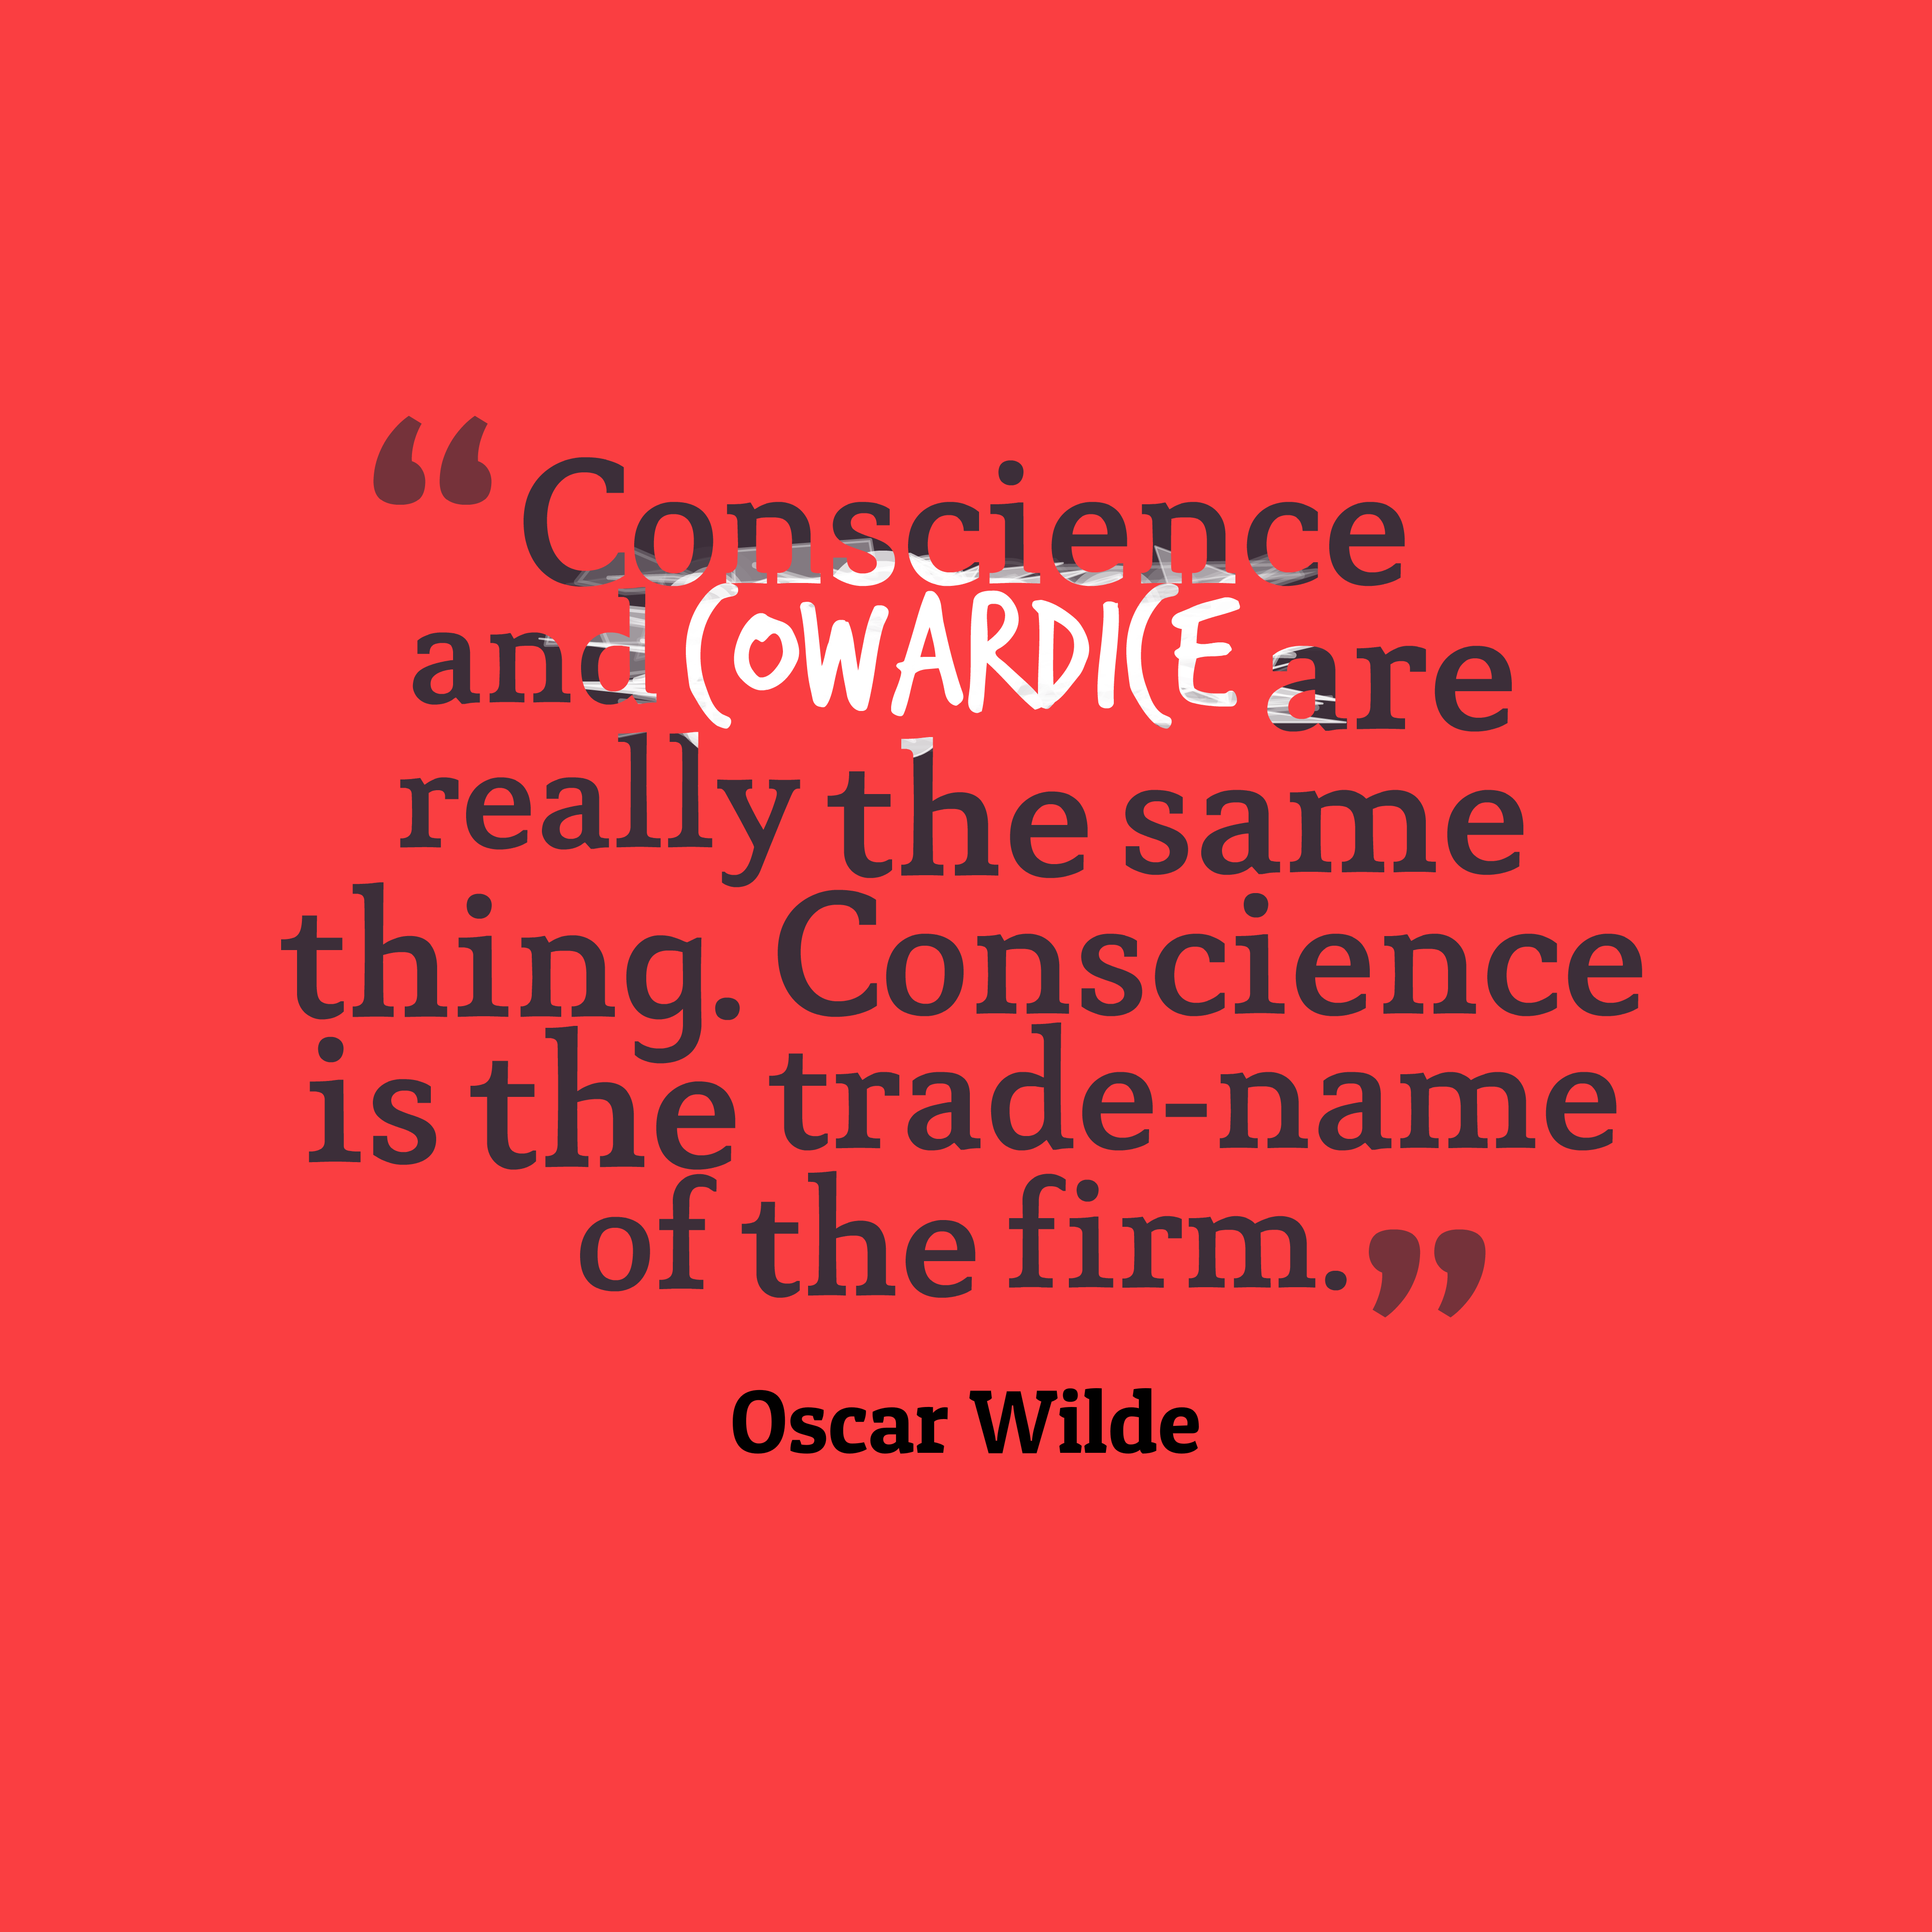 Quotes image of Conscience and cowardice are really the same thing. Conscience is the trade-name of the firm.